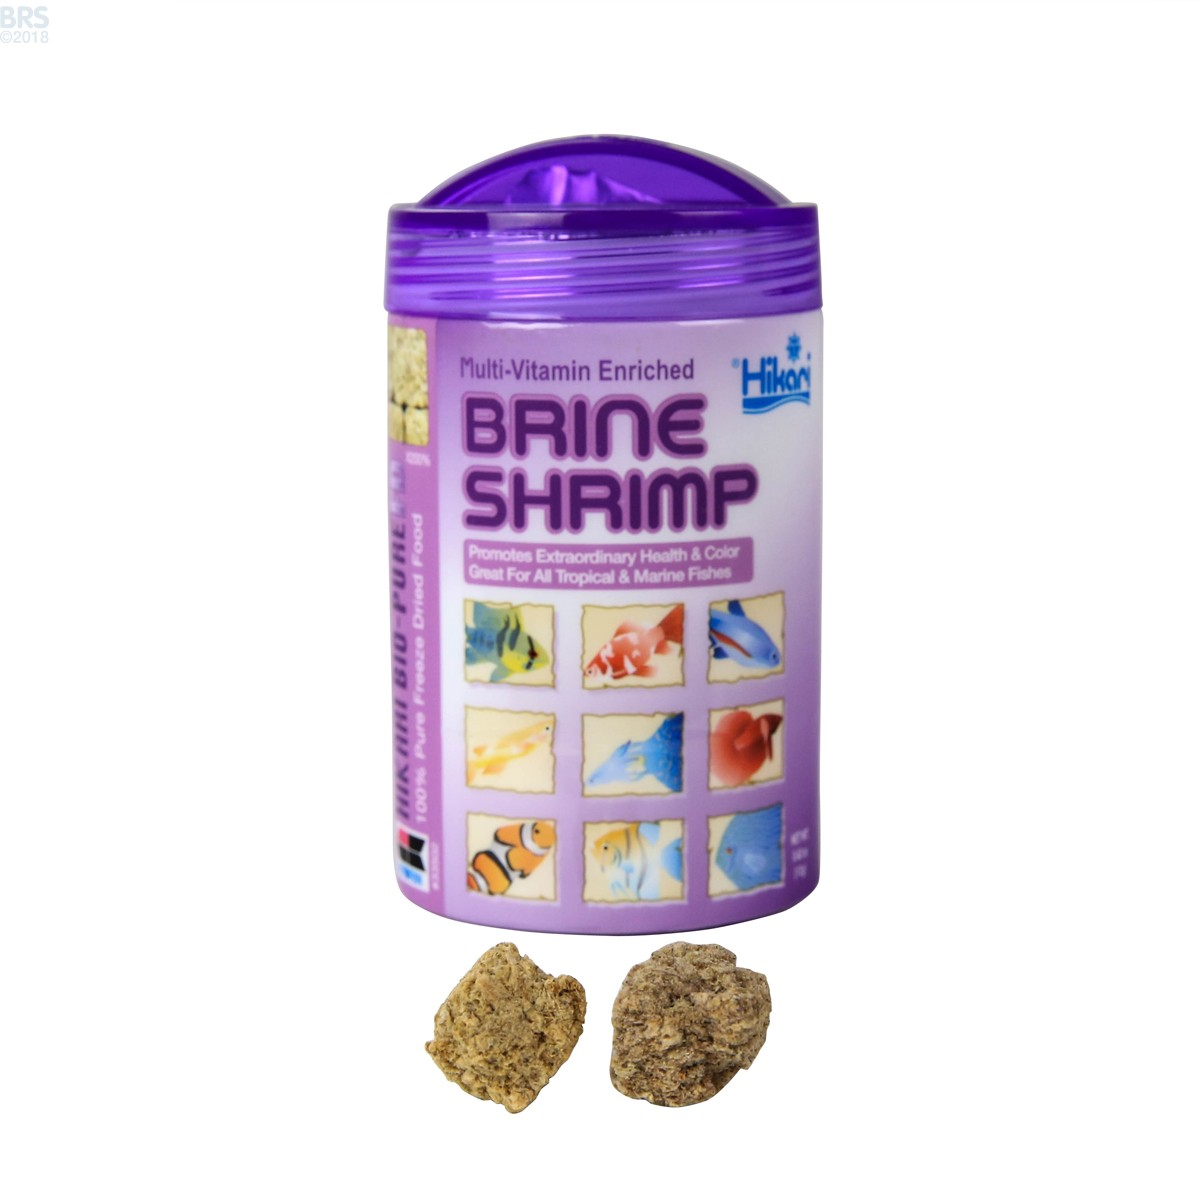 bio brine shrimp Bio-pure ® fd brine shrimp live brine shrimp harvested at their nutritional peak offers a natural source for fatty acids and natural algaes an excellent treat almost any fish will eagerly accept.